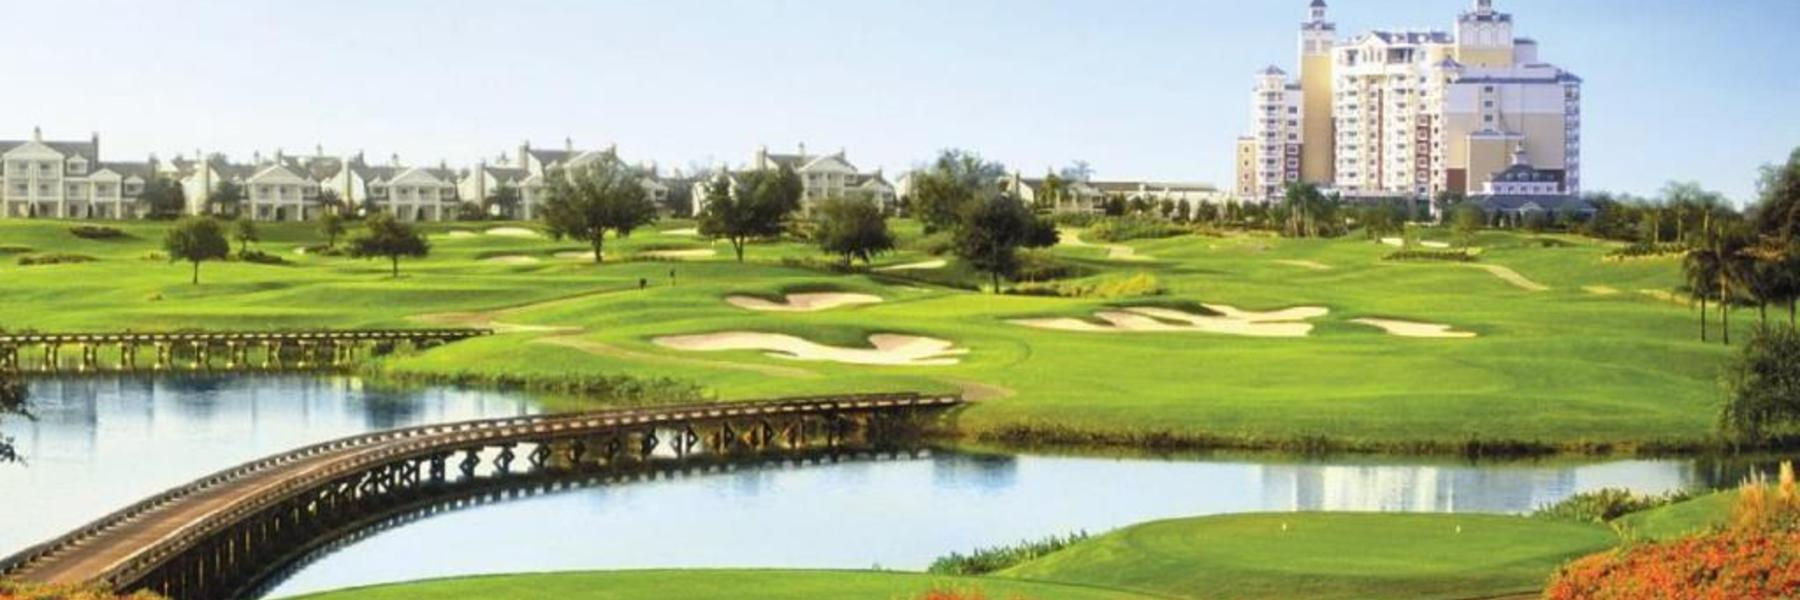 "Golf Vacation Package - Reunion Golf Resort ""UNLIMITED GOLF"" Stay & Play for $268 per day!"